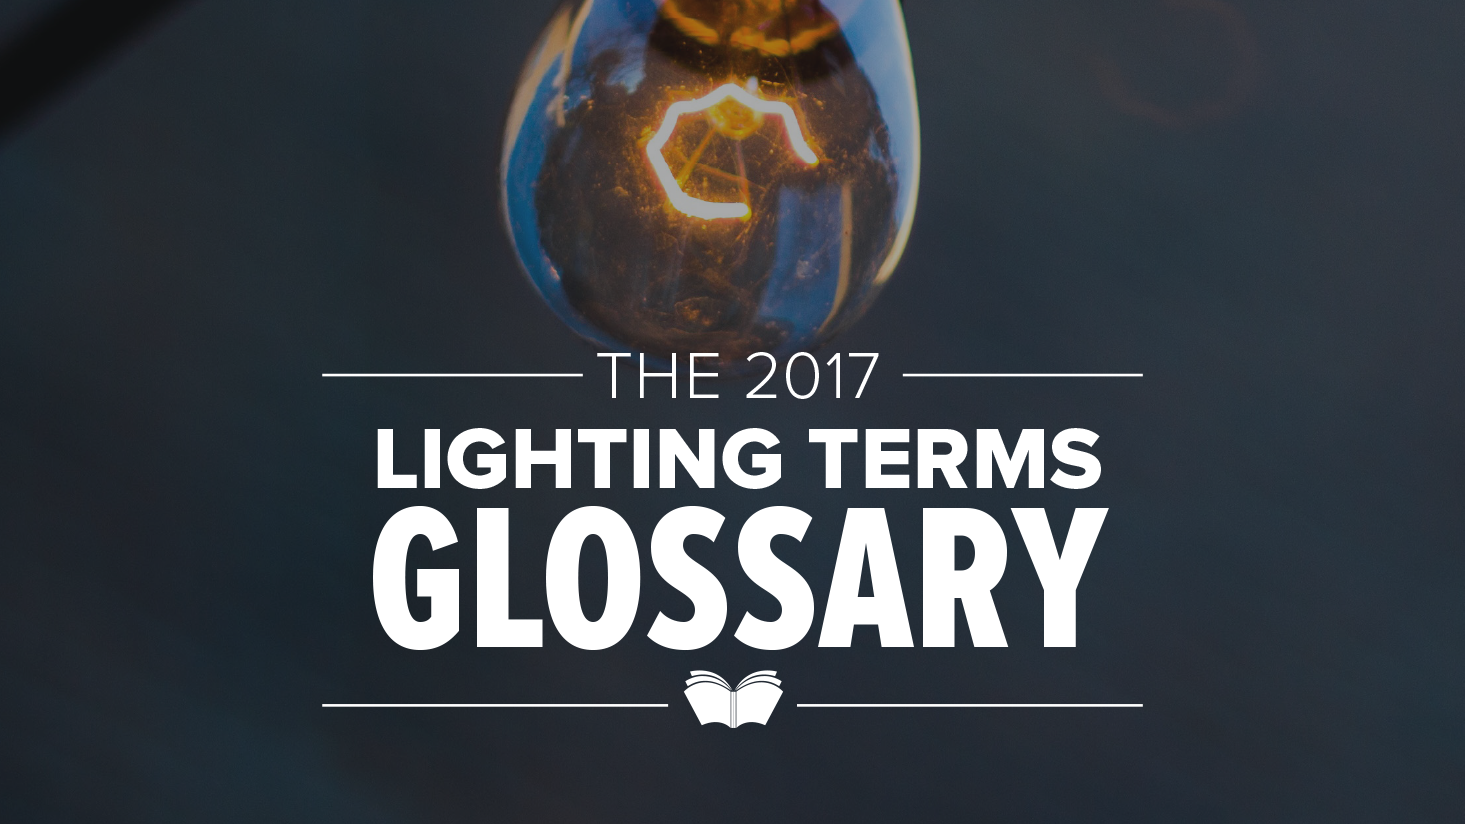 Lighting Terms Glossary: 2017 Edition